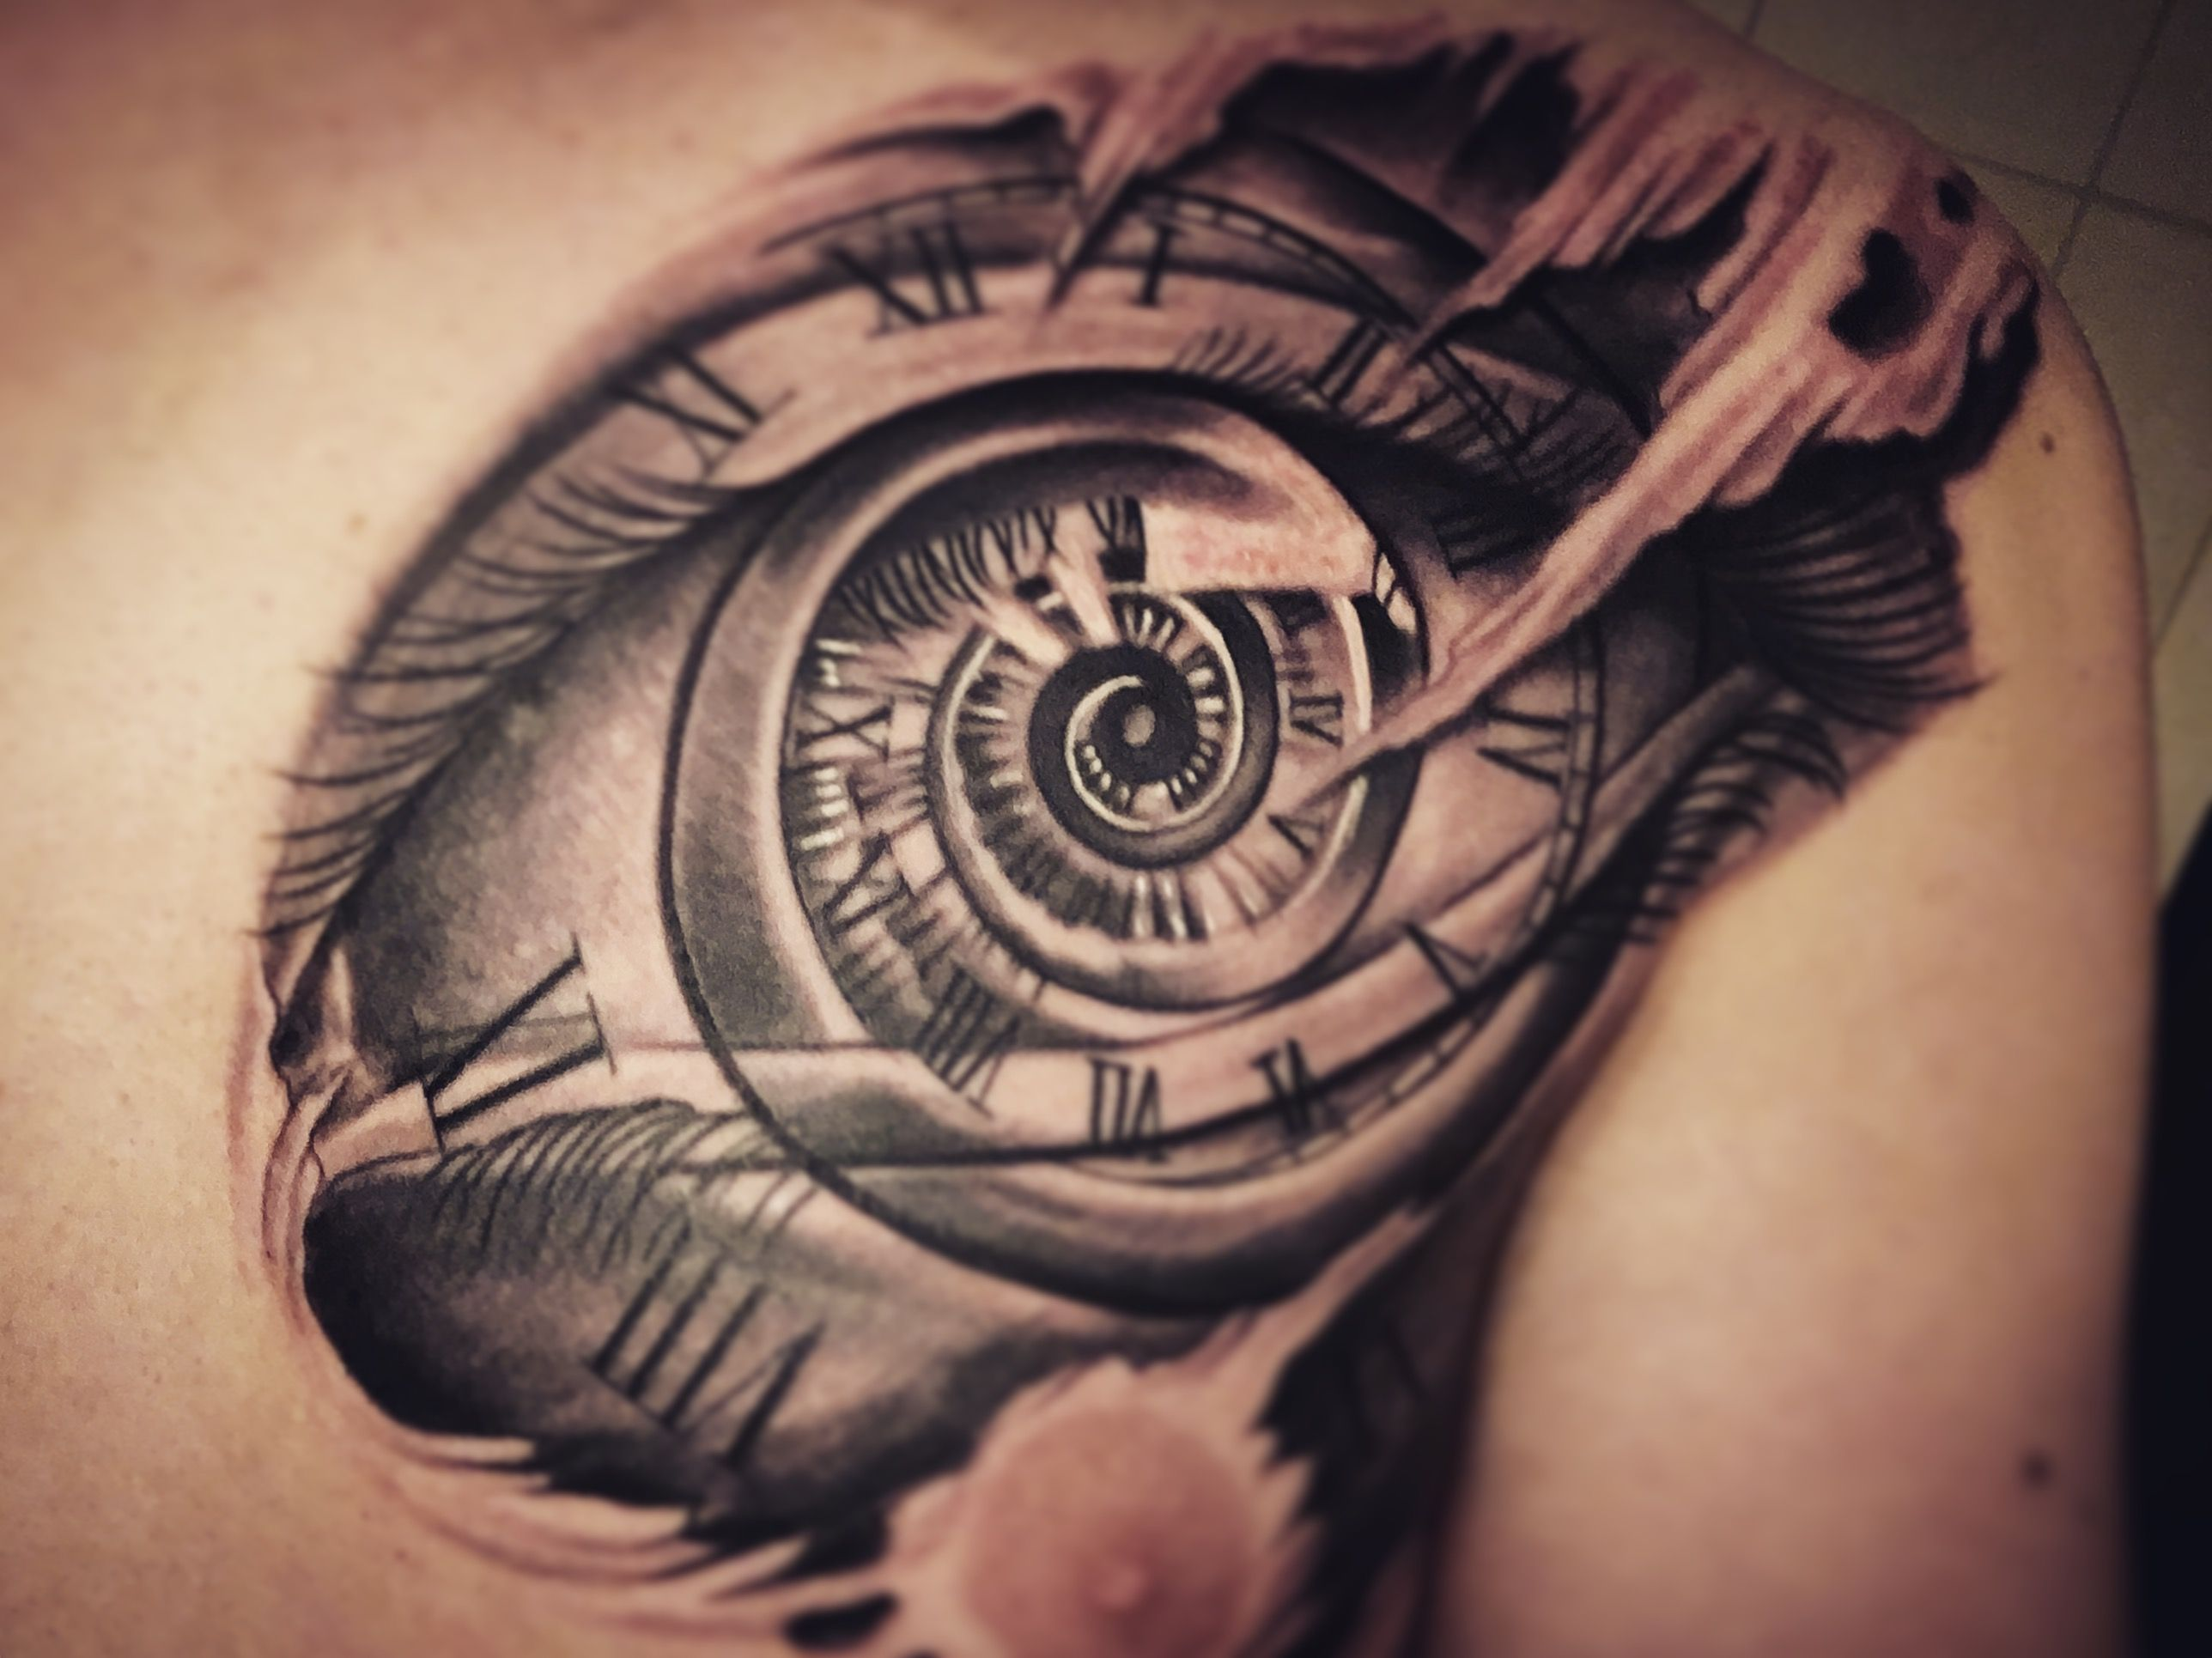 tattoo, Black and gray, chest, clock, eye, riped skin